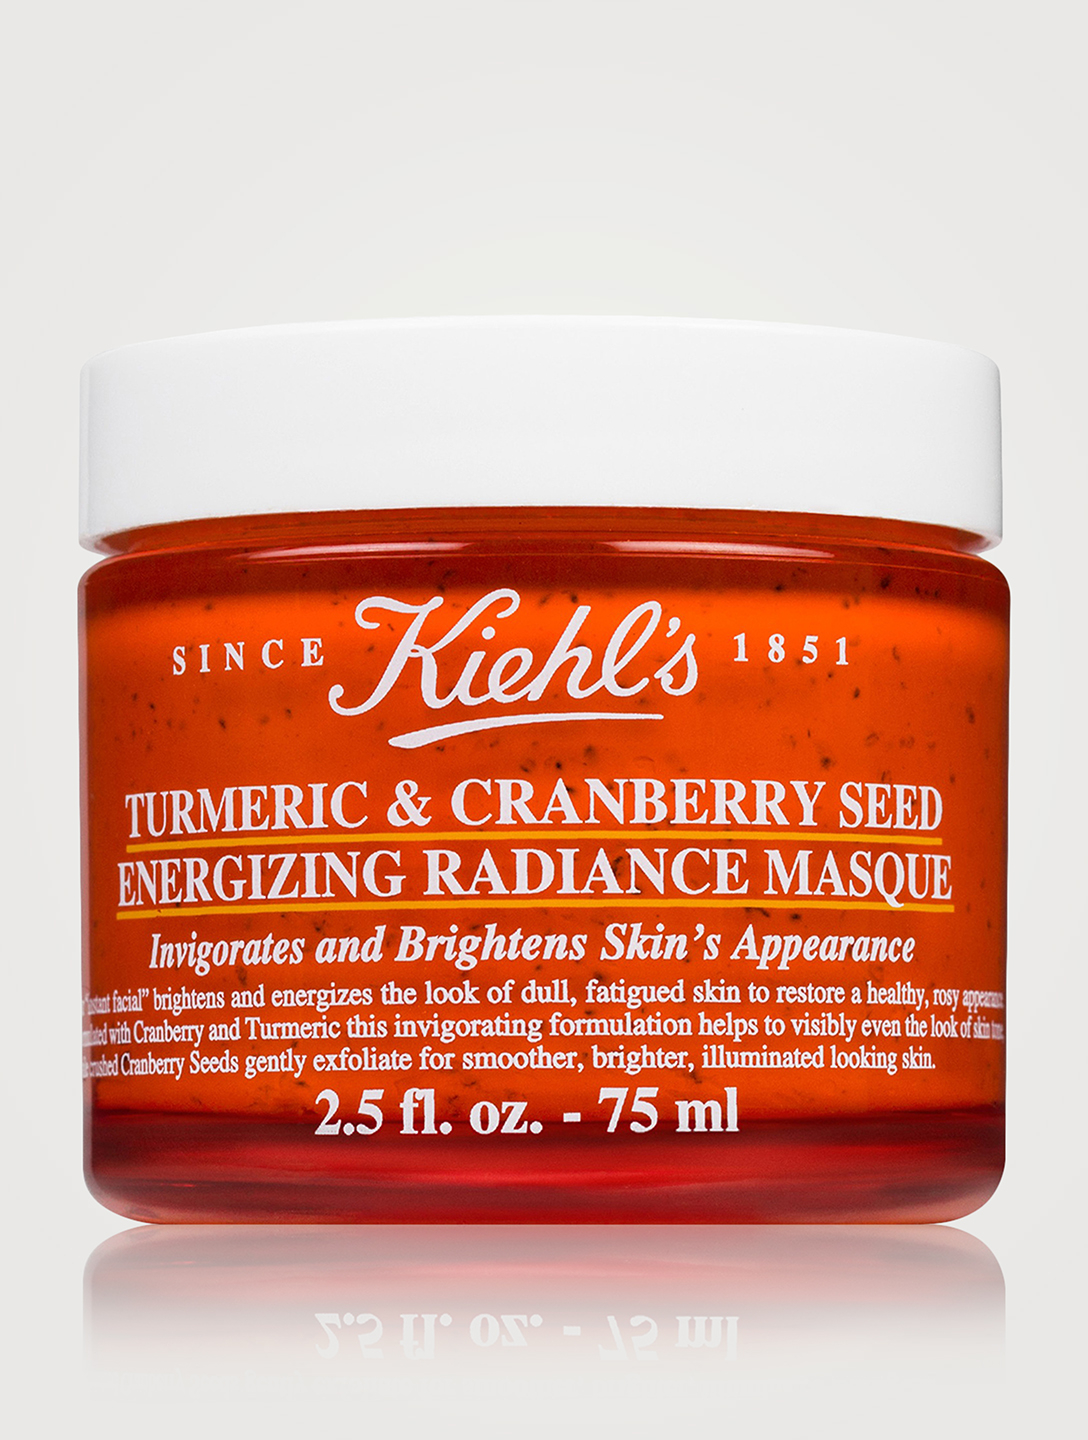 KIEHL'S Turmeric & Cranberry Seed Energizing Radiance Masque Beauty